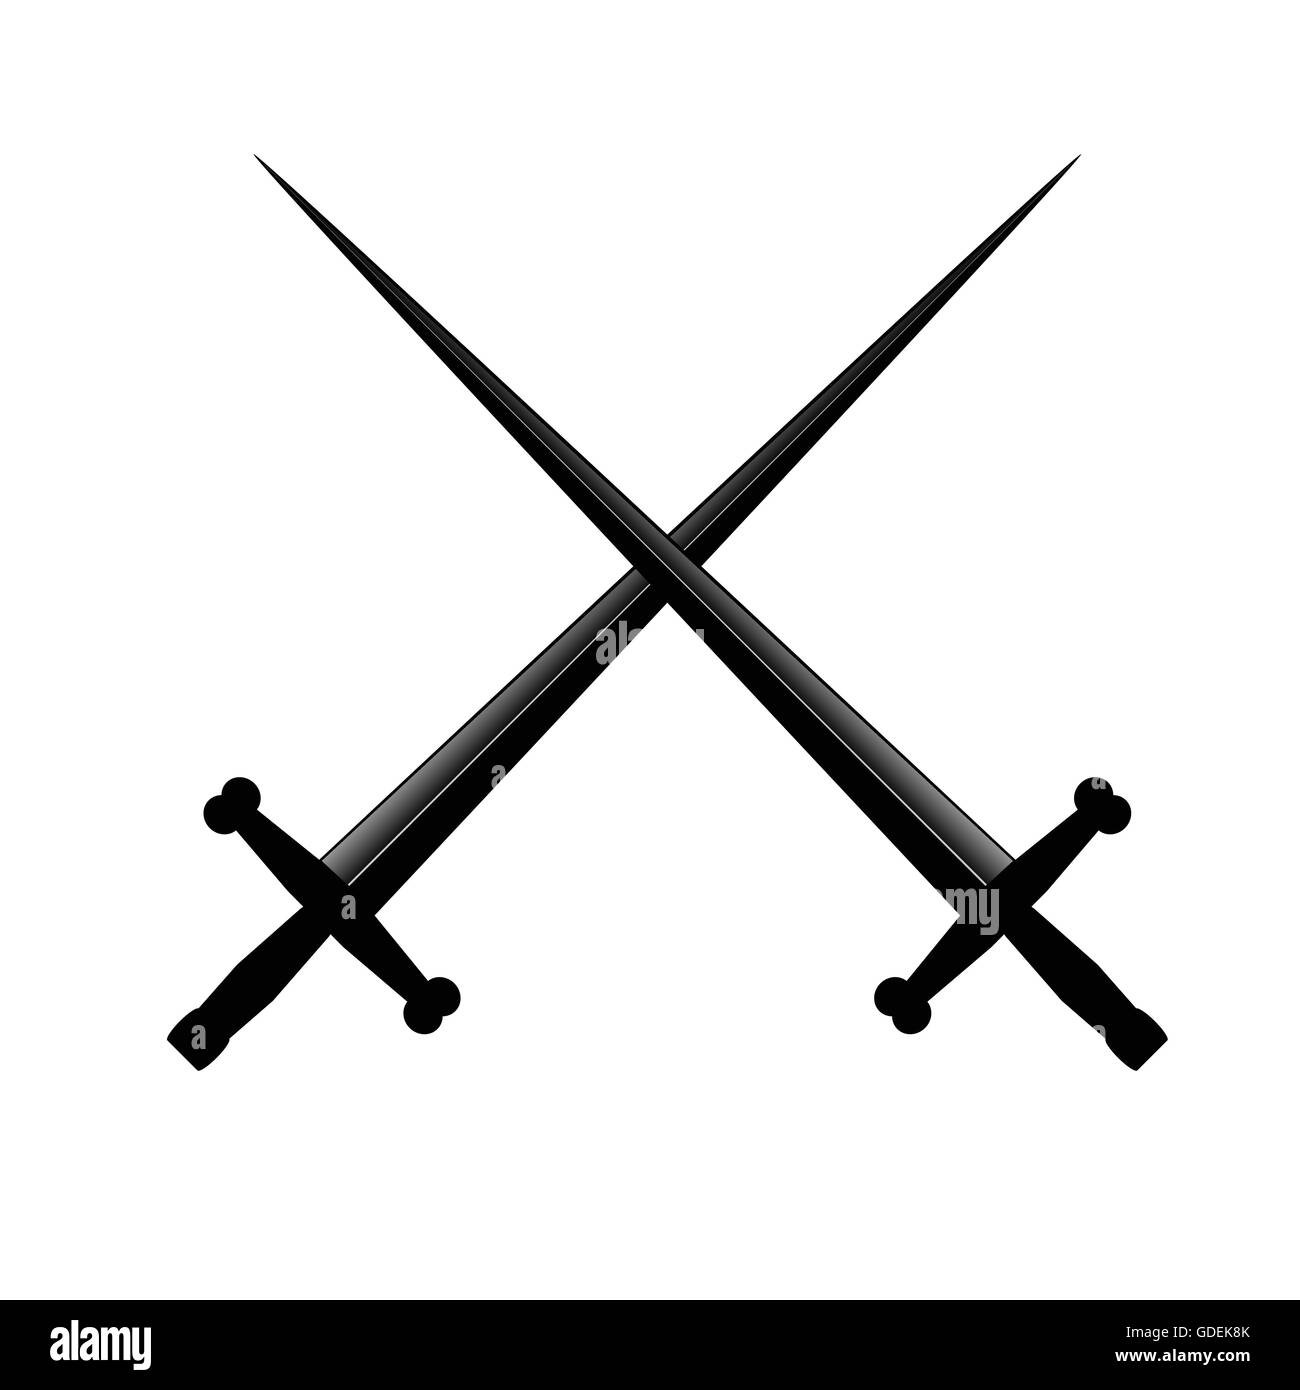 sword two art vector illustration on white background - Stock Image